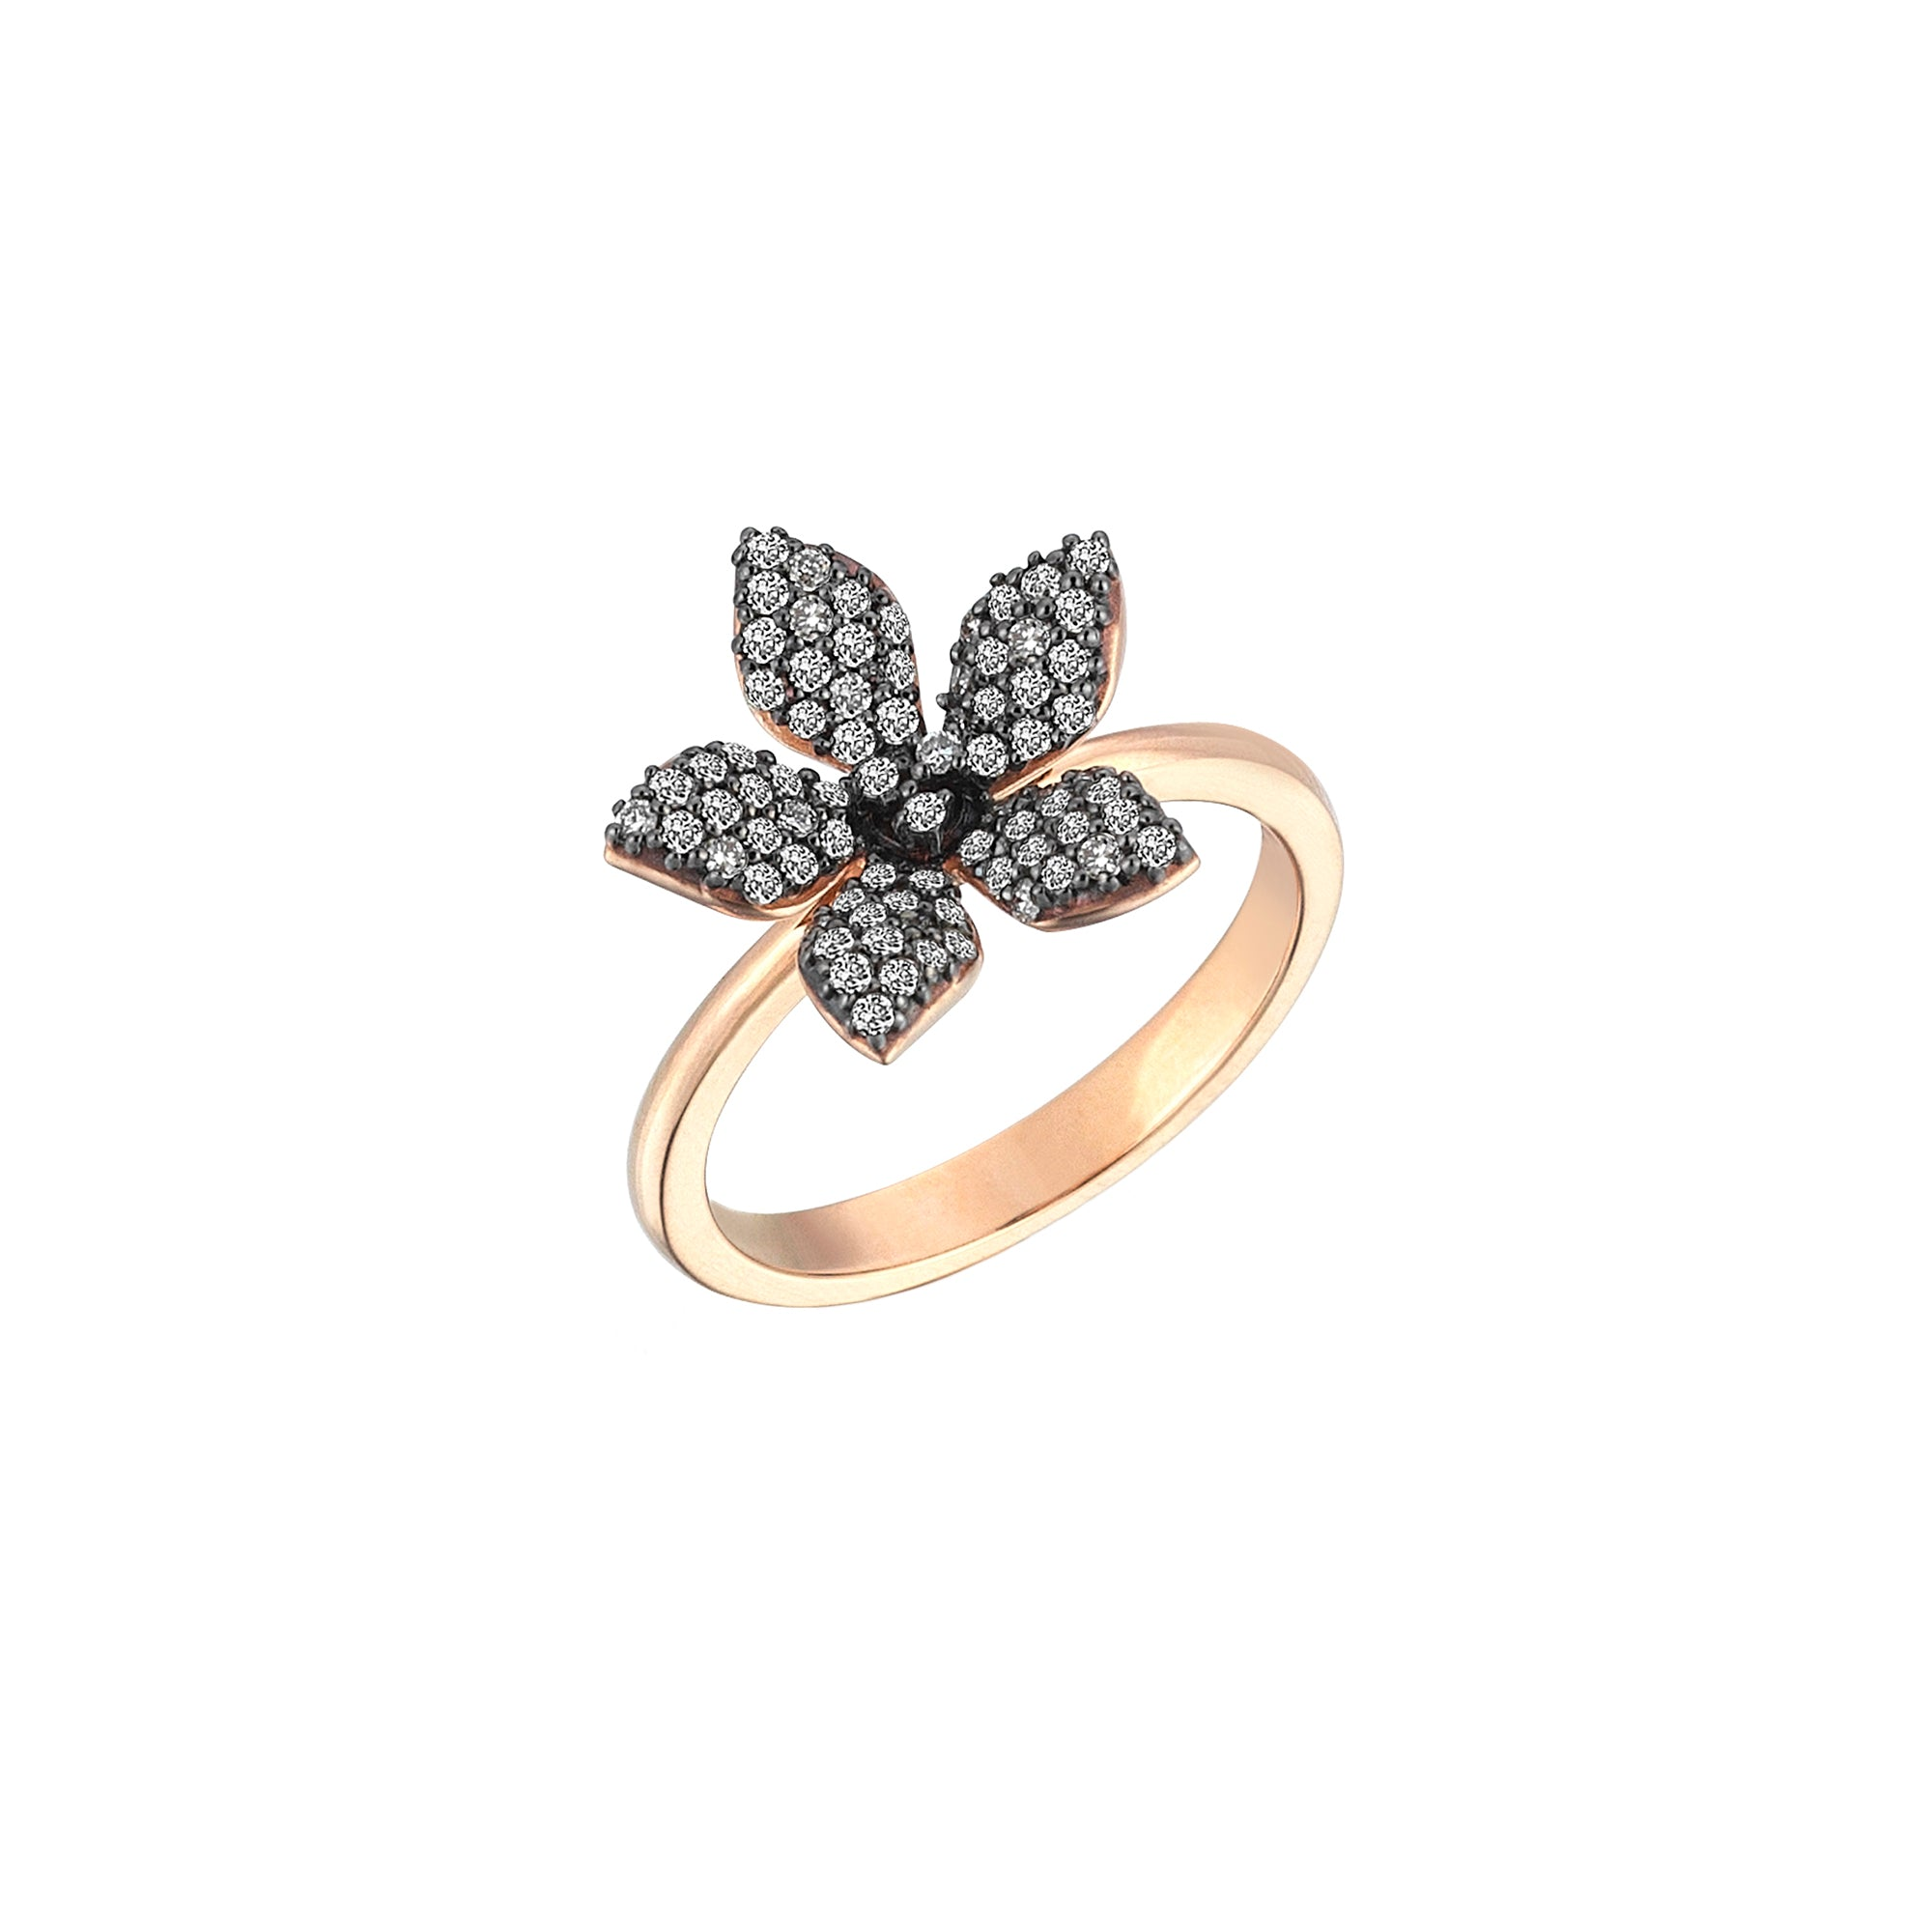 Flora Ring - Aida Bergsen - Rings | Broken English Jewelry